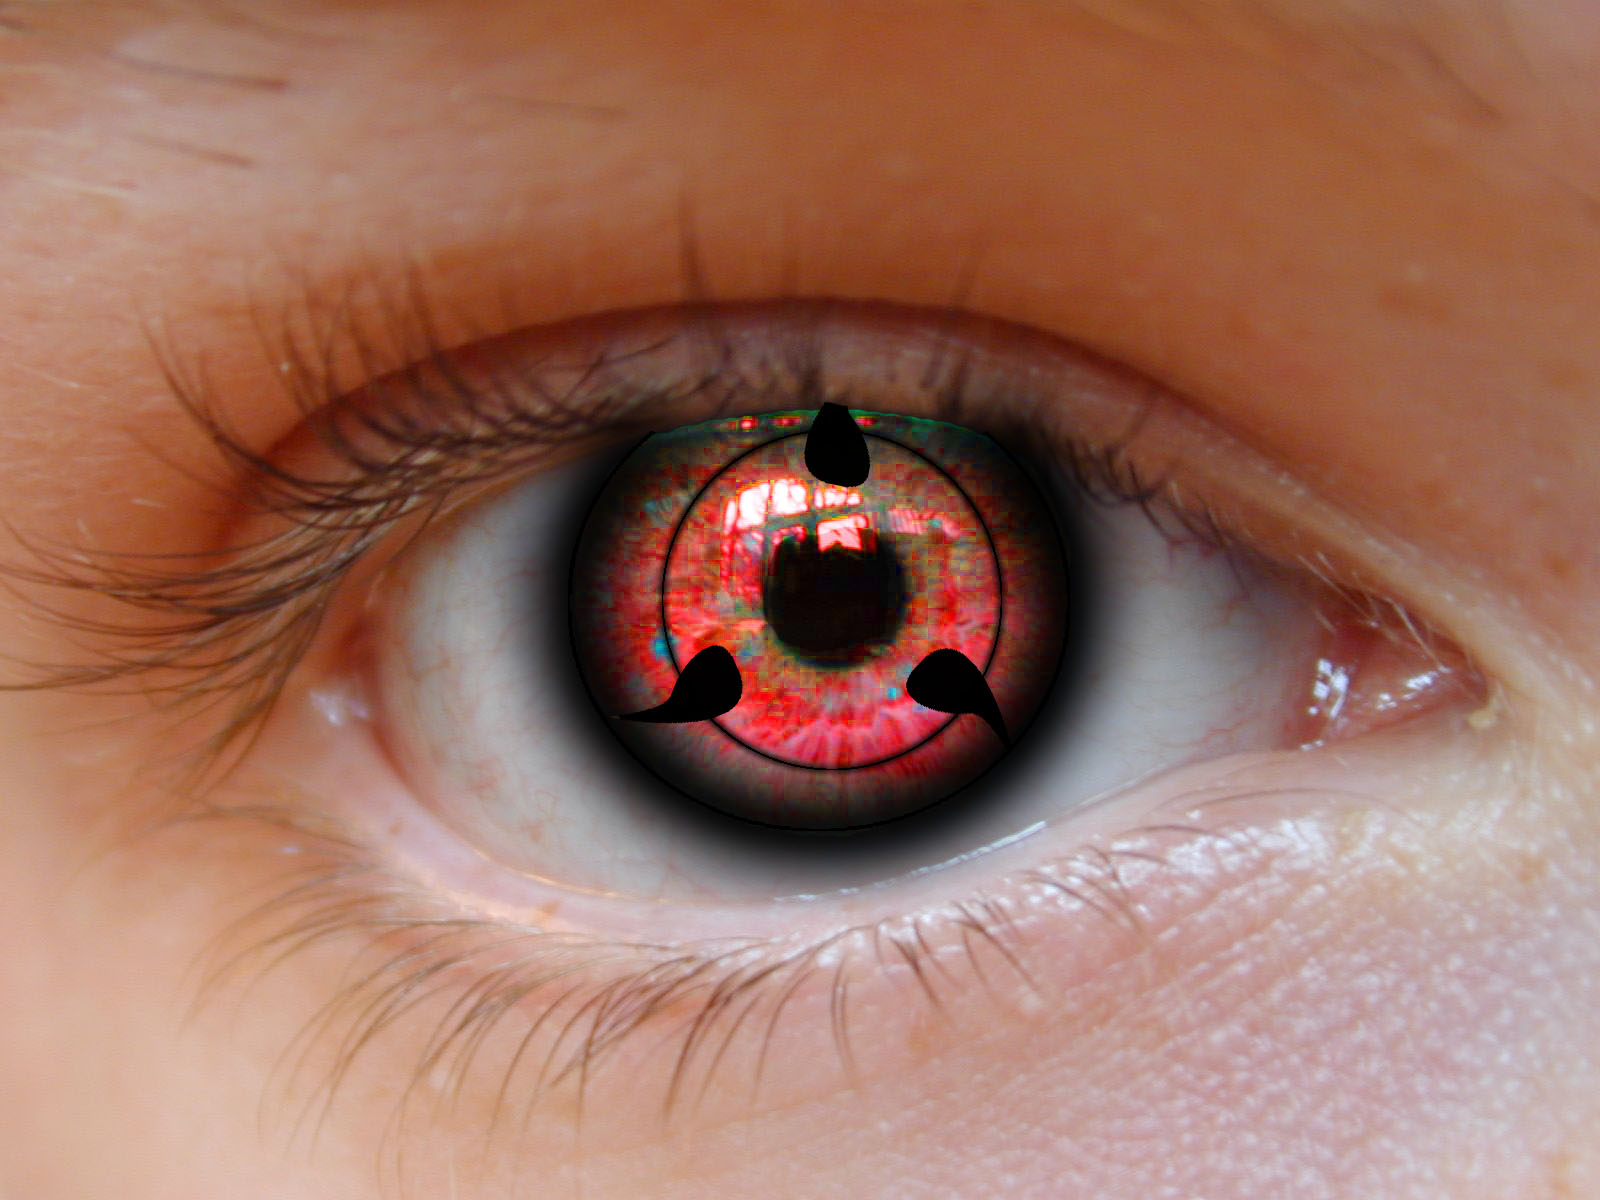 Positive and Negative Effects of Contact Lenses on the Eyes